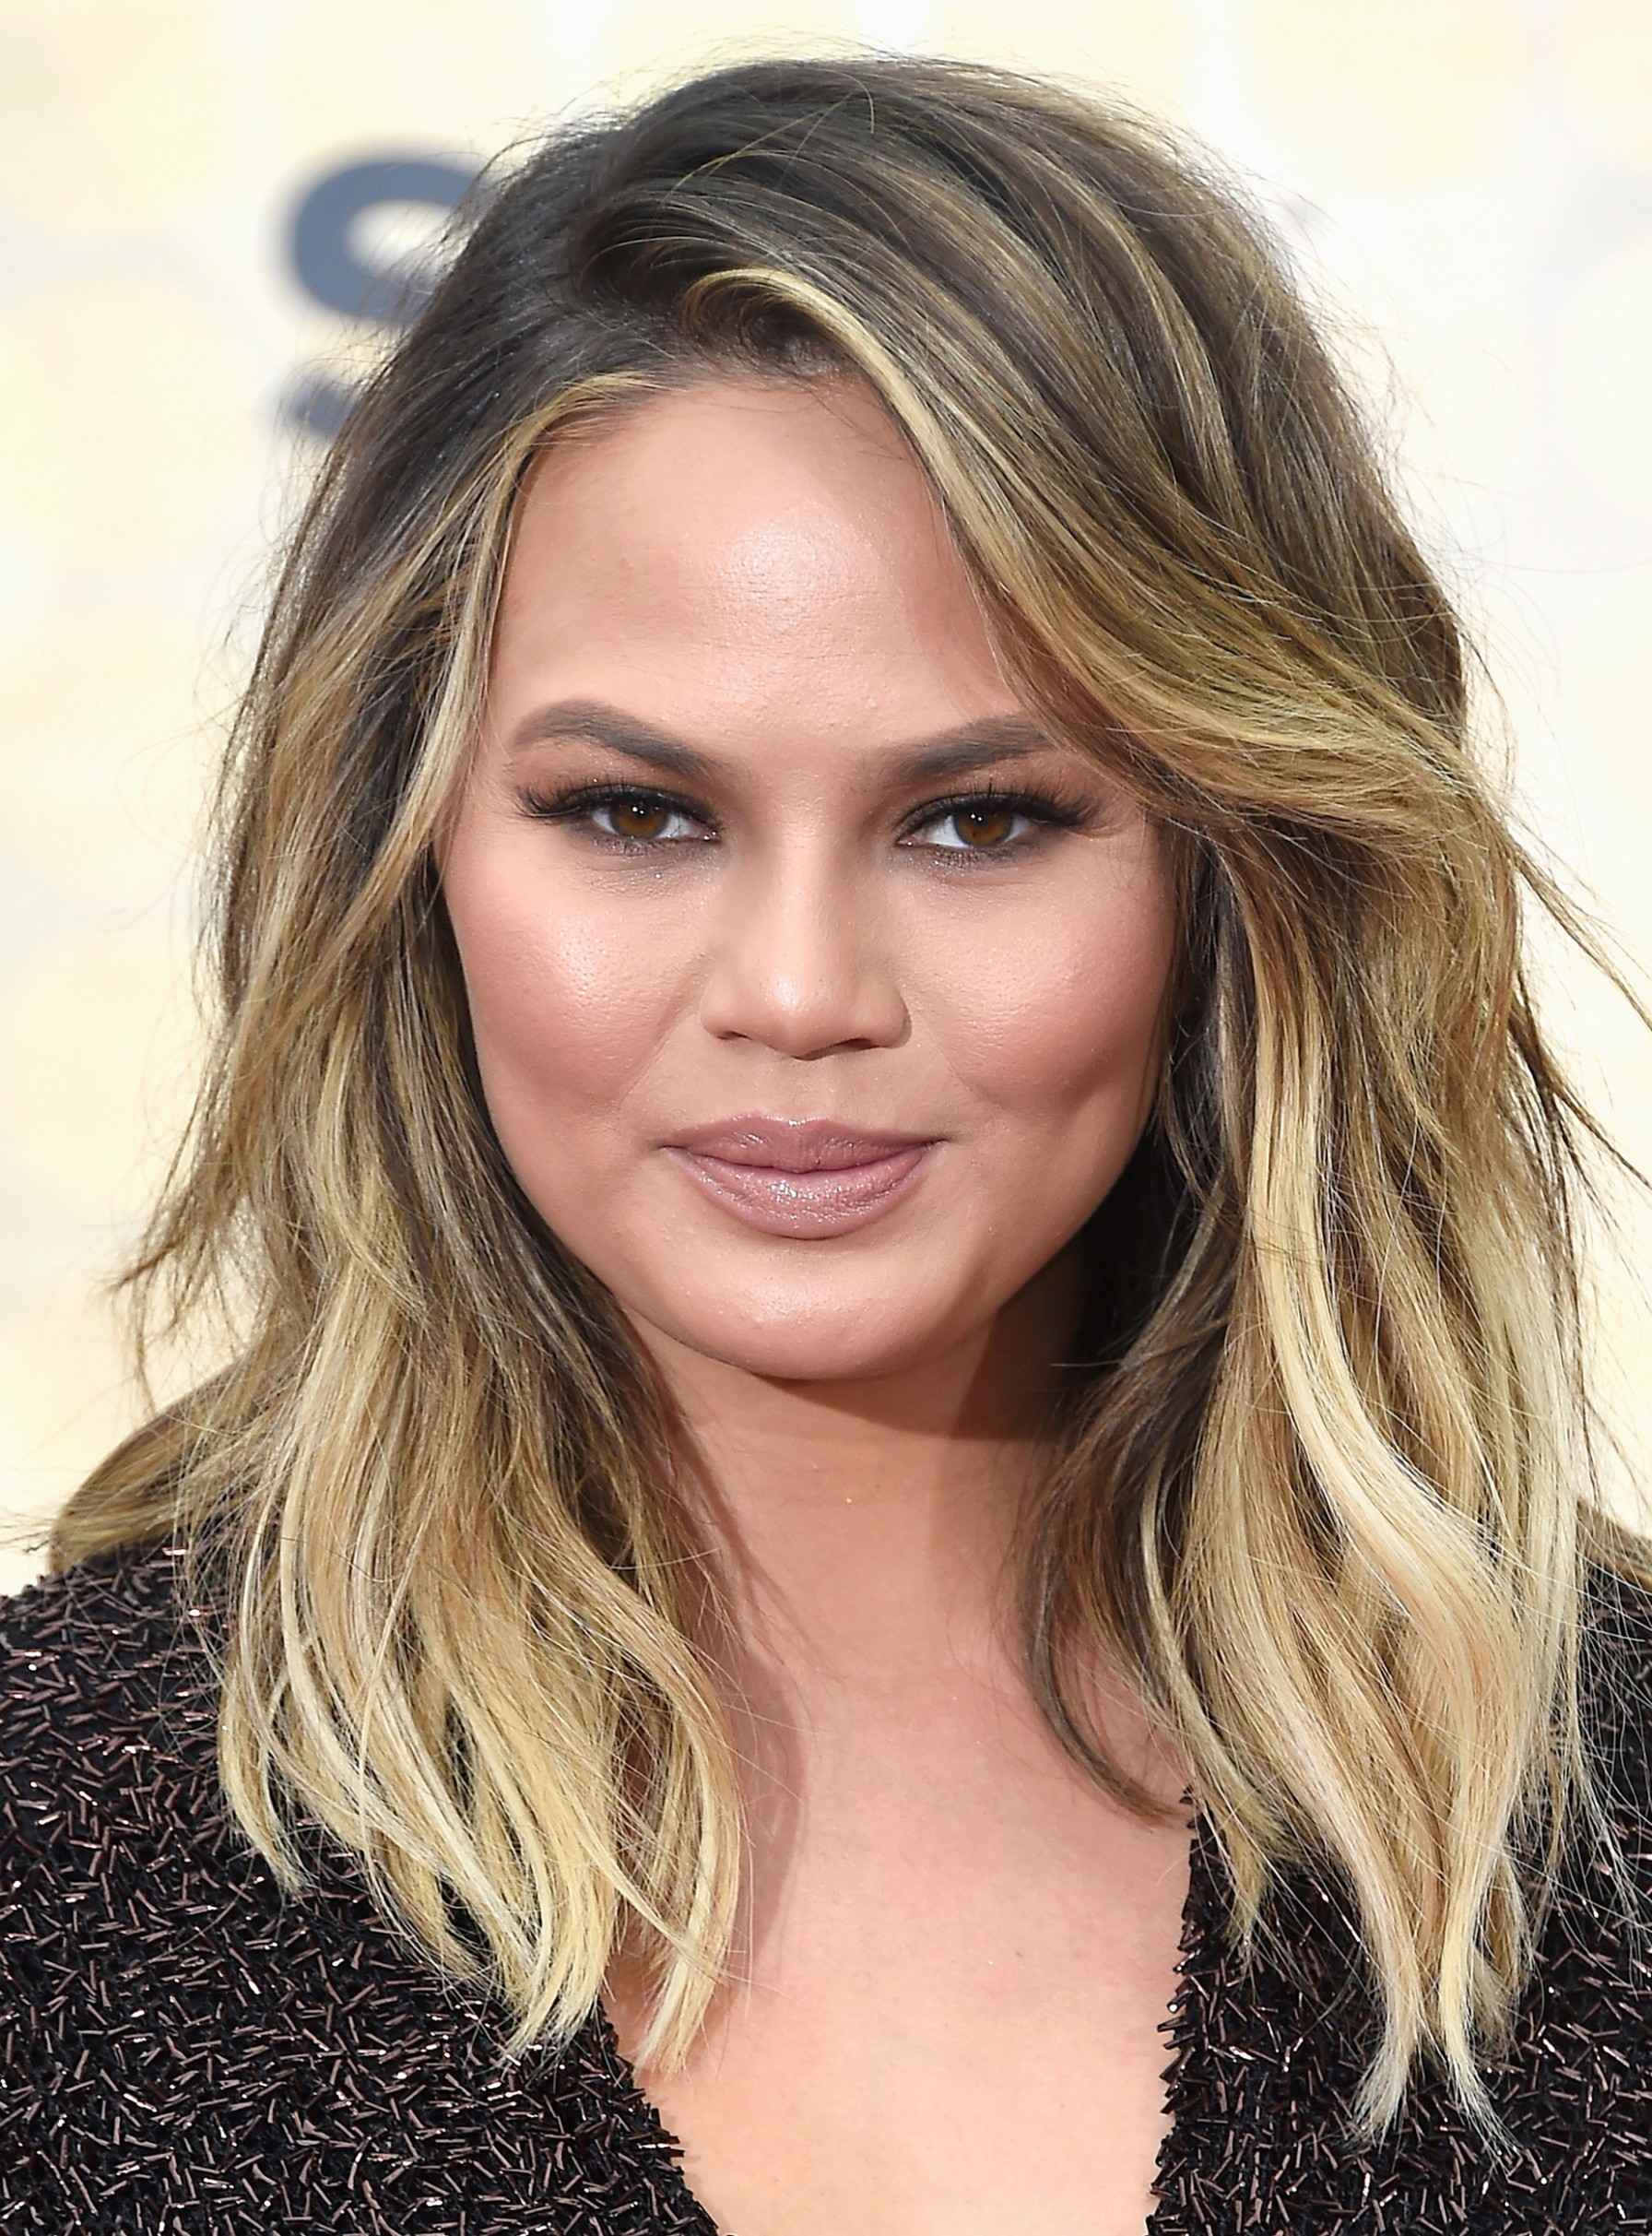 12 Best Hairstyles For Round Faces Round Head Hairstyles